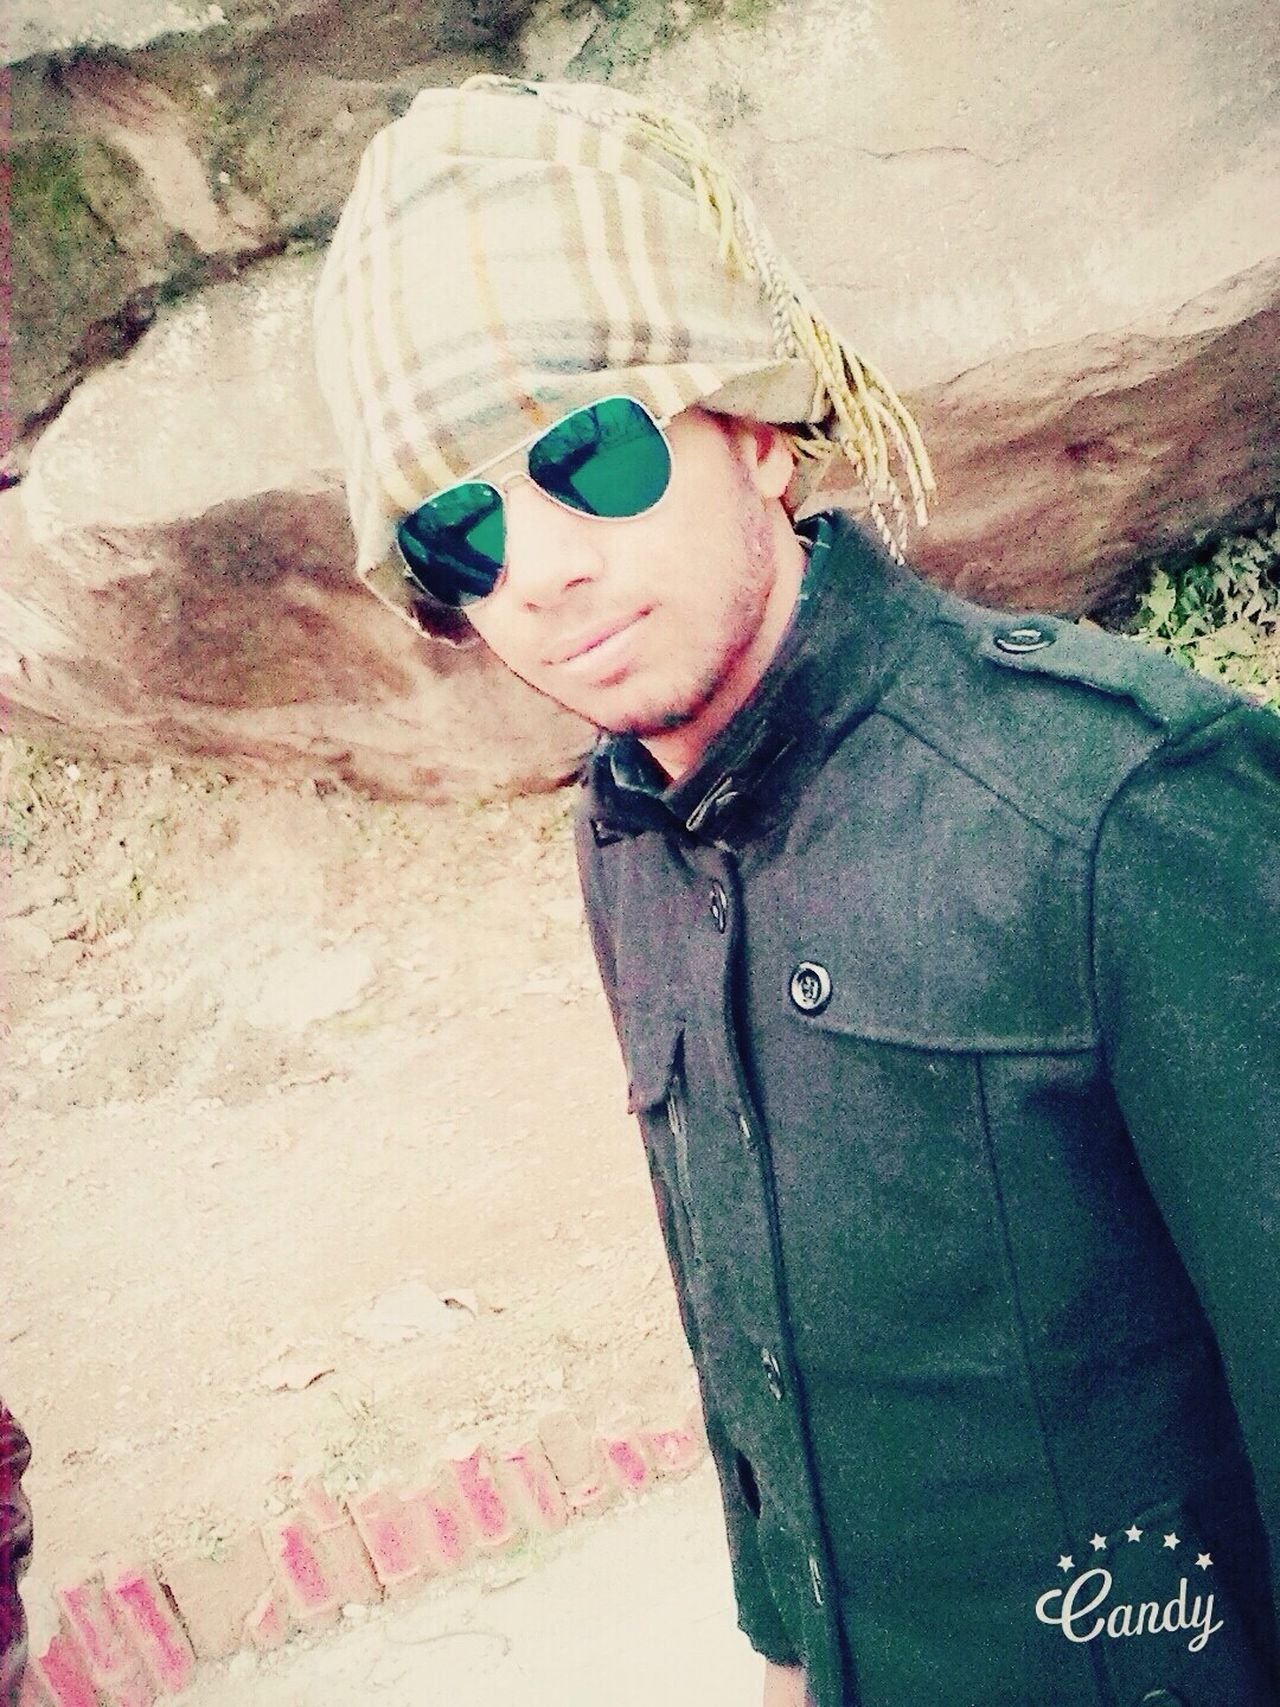 Enjoying Life Taking Photos Check This Out That's Me Murree The Tourist Attraction Hello World First Eyeem Photo Taking Photos